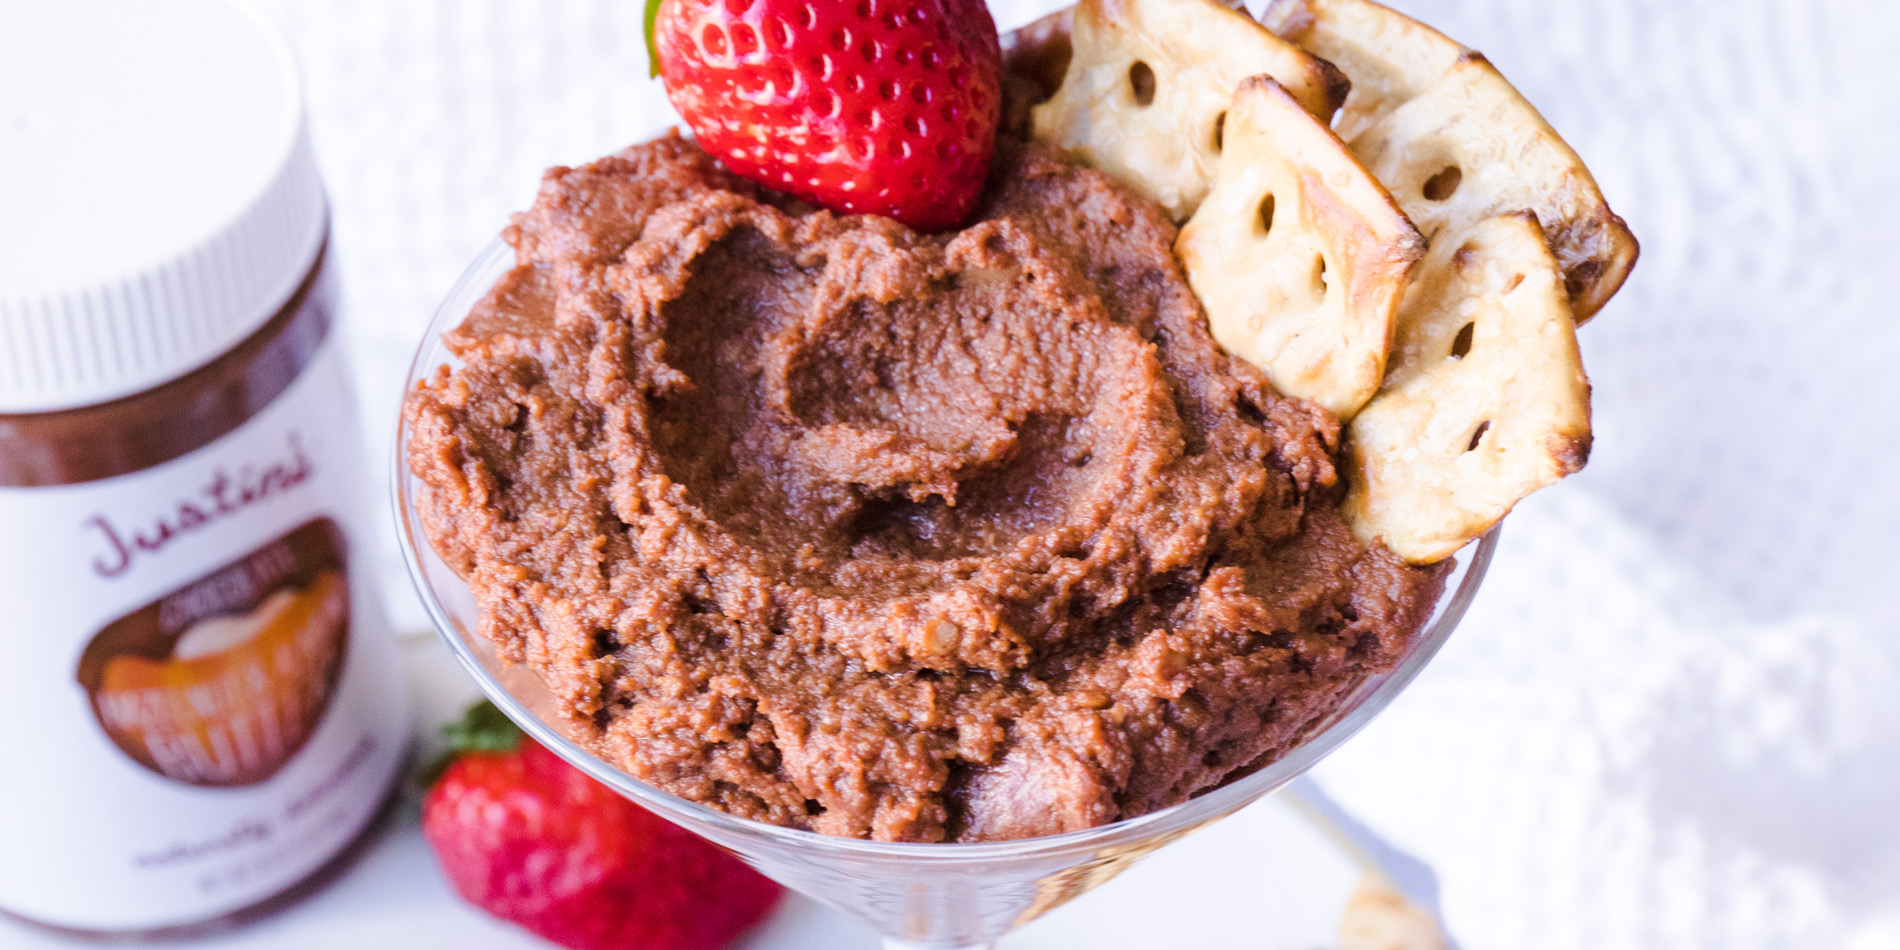 Chocolate Hazelnut and Almond Dessert Hummus on a clear glass with strawberries in the background